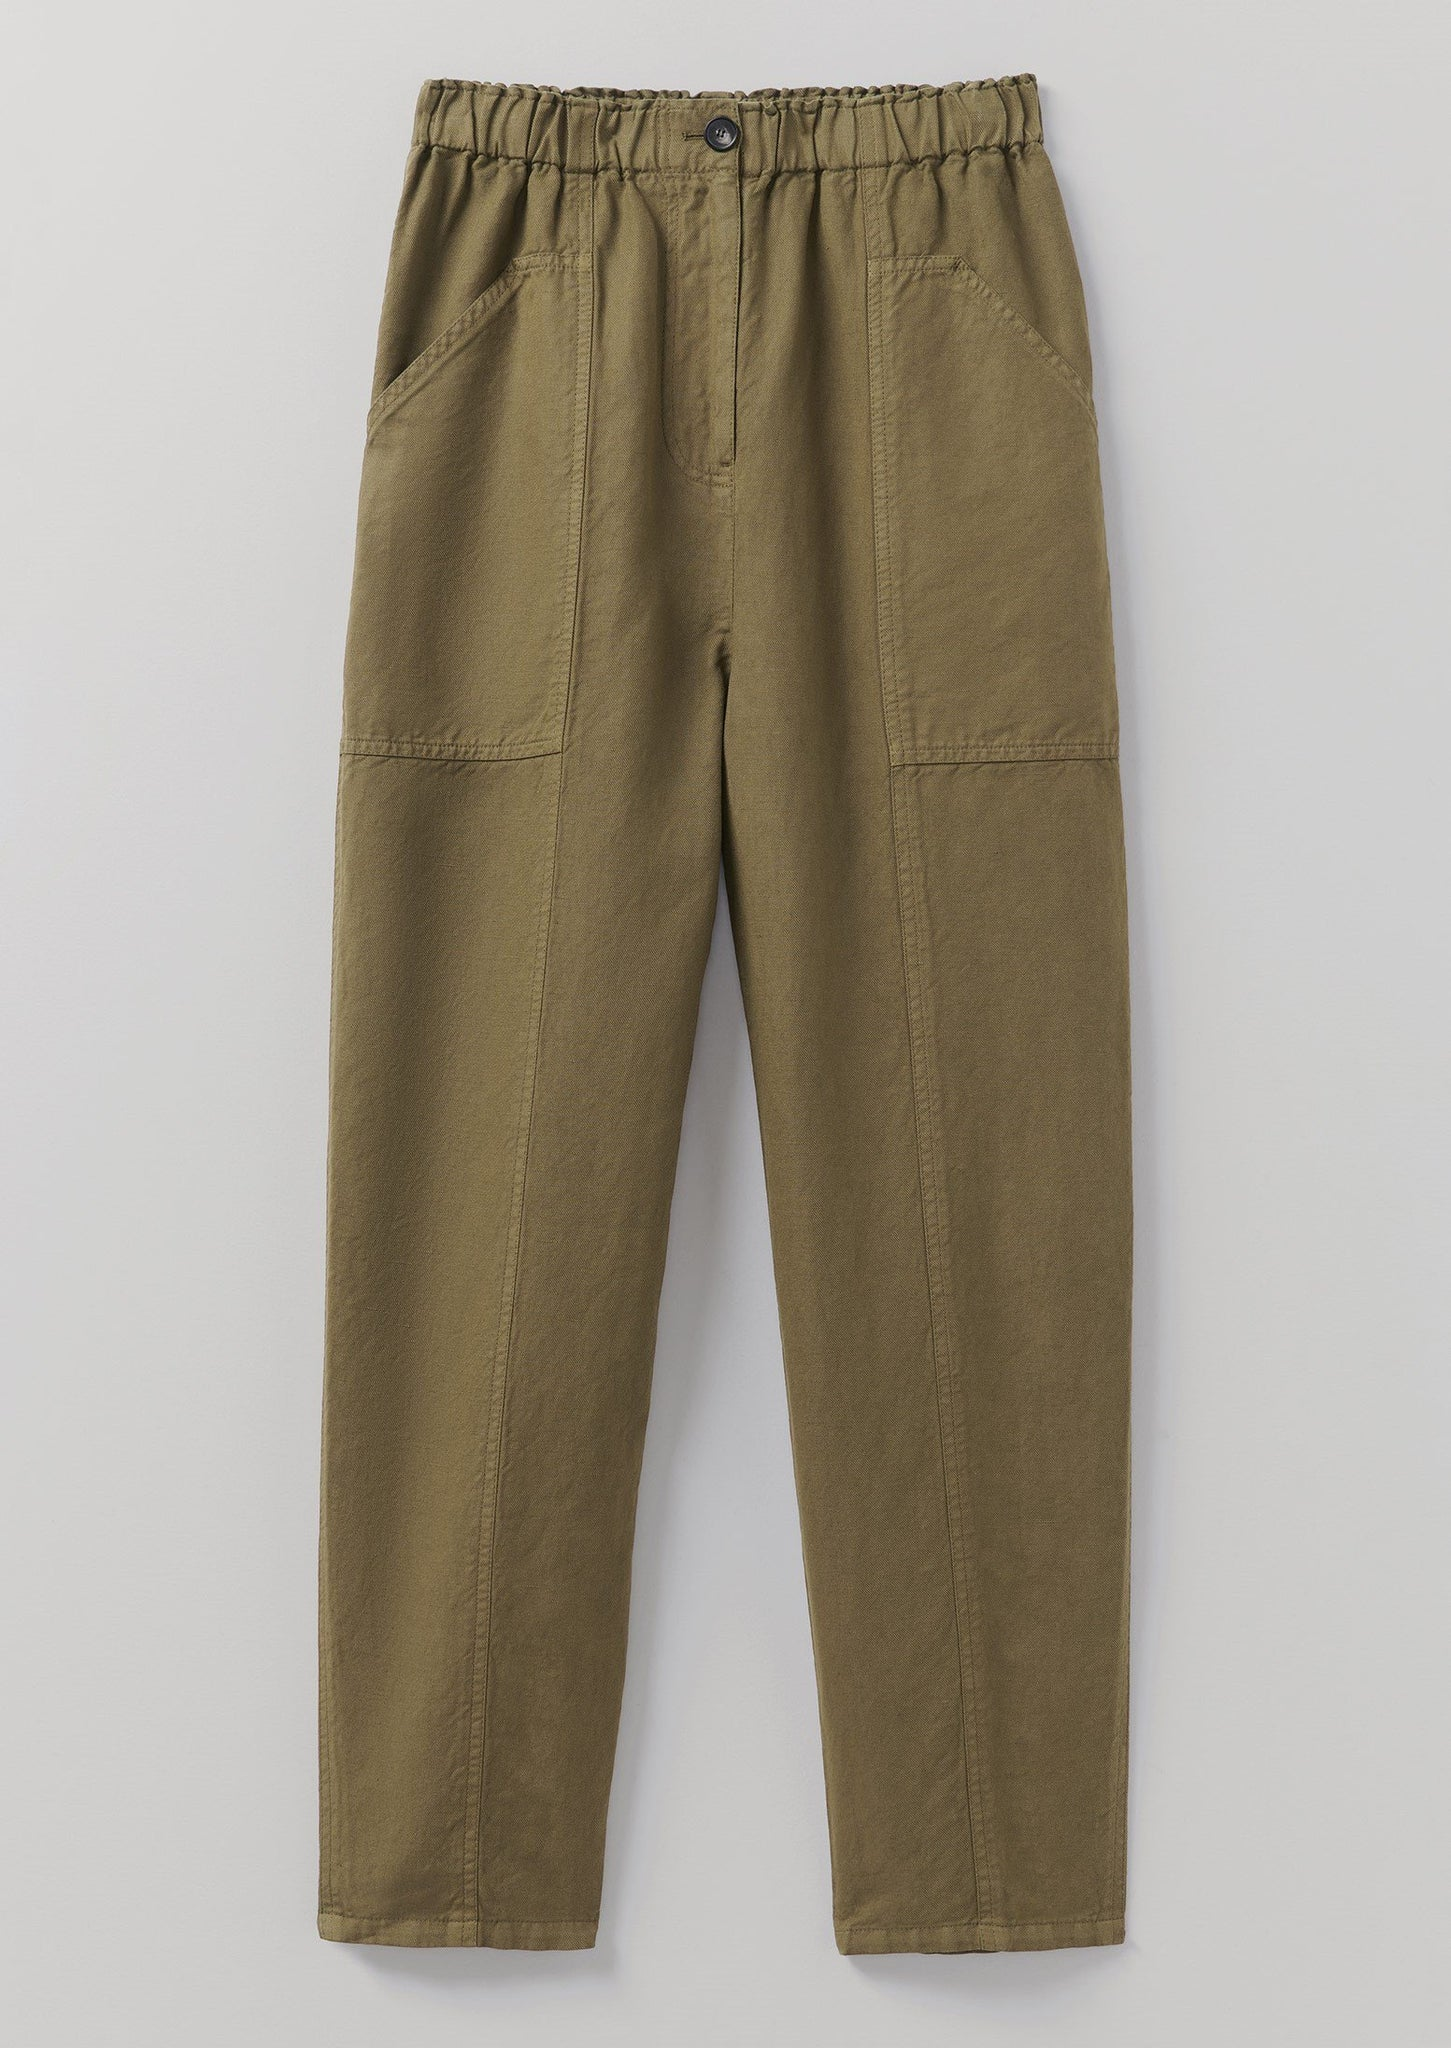 Cotton Linen Tapered Trousers | Military Olive